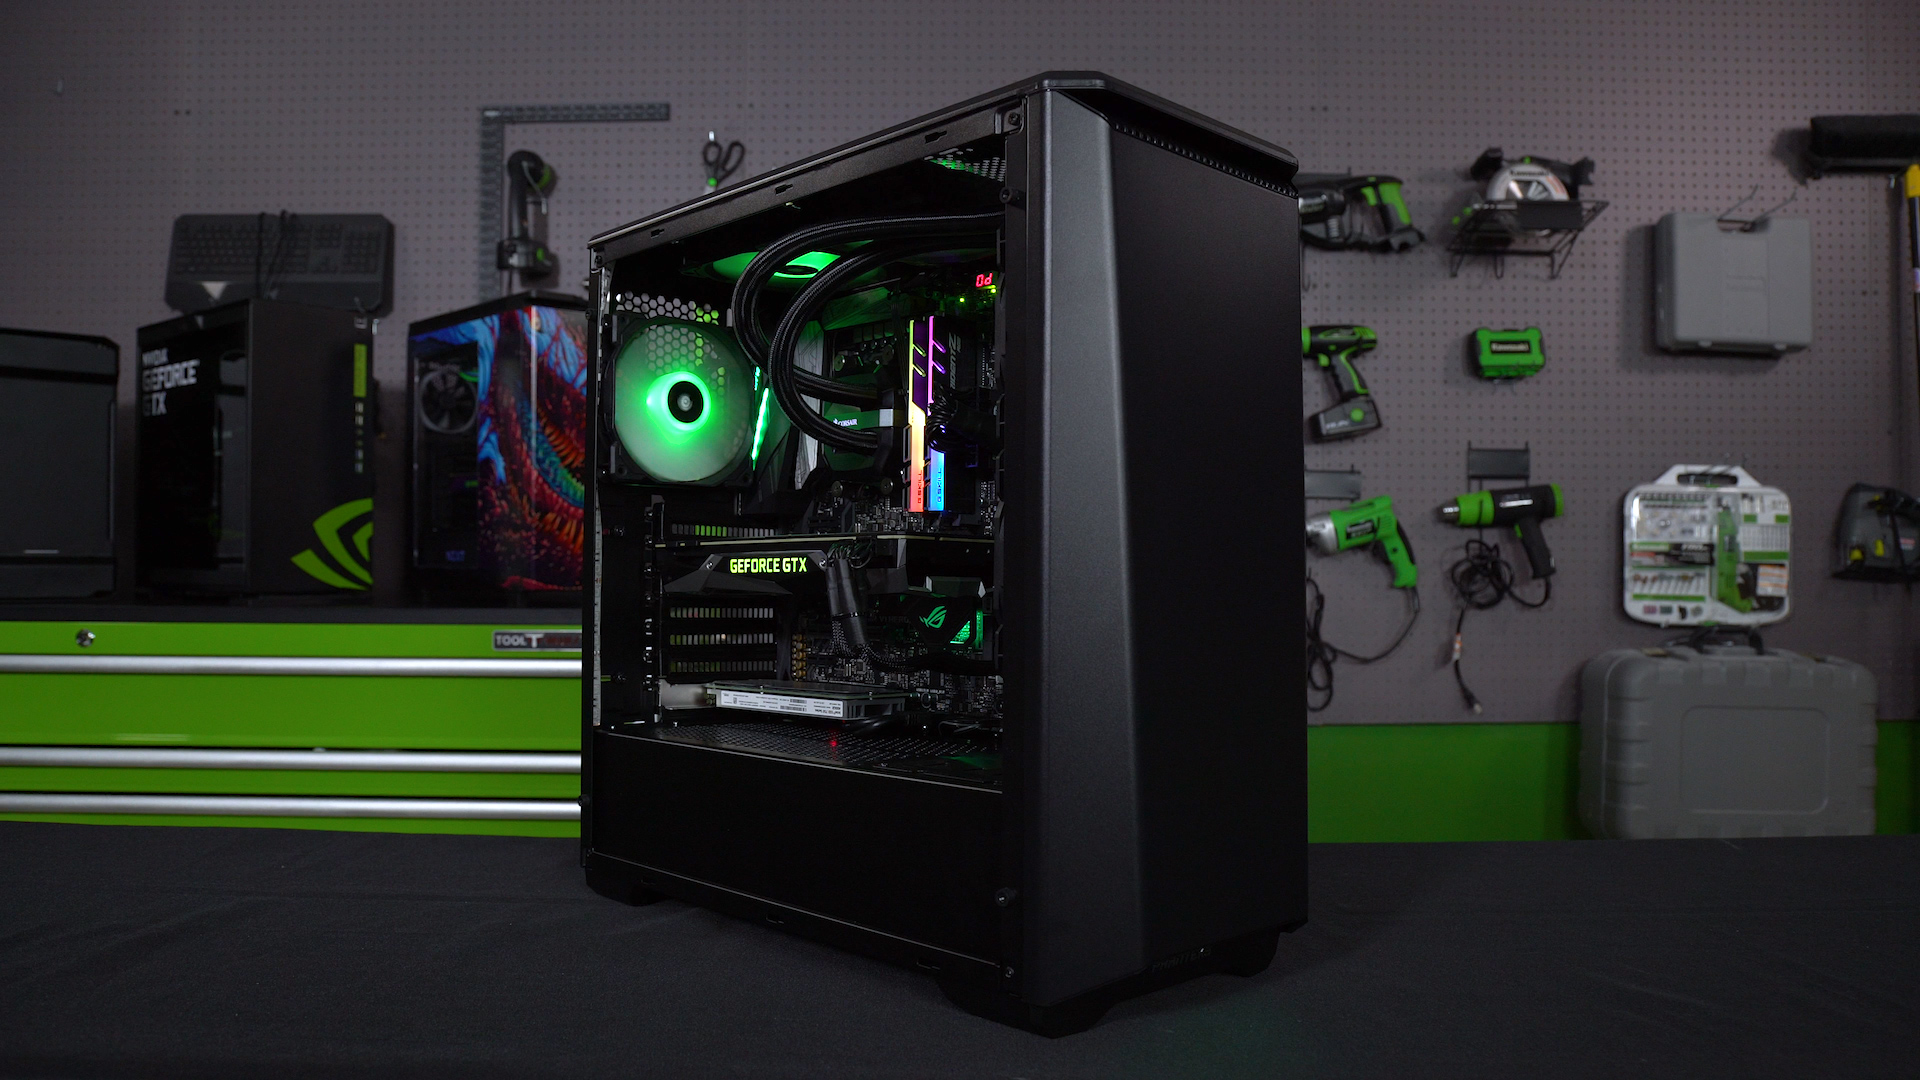 GeForce Garage An Ultimate RGB Elite Performance Build Powered By